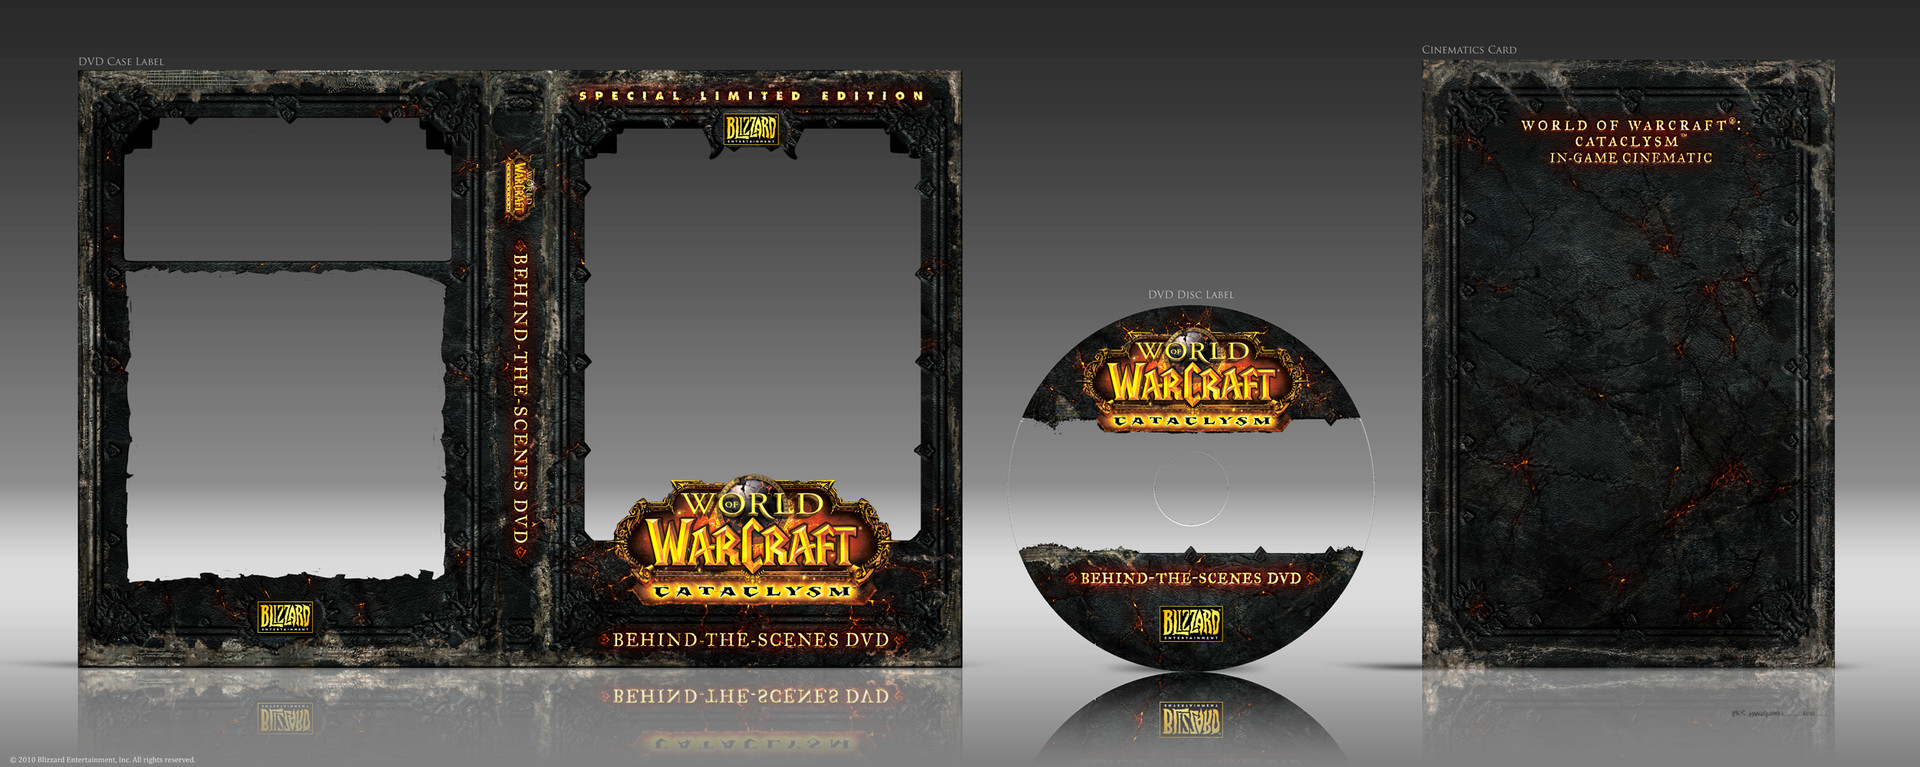 "Final DVD Set Designs for ""World of Warcraft: Cataclysm"" CE Box Set"